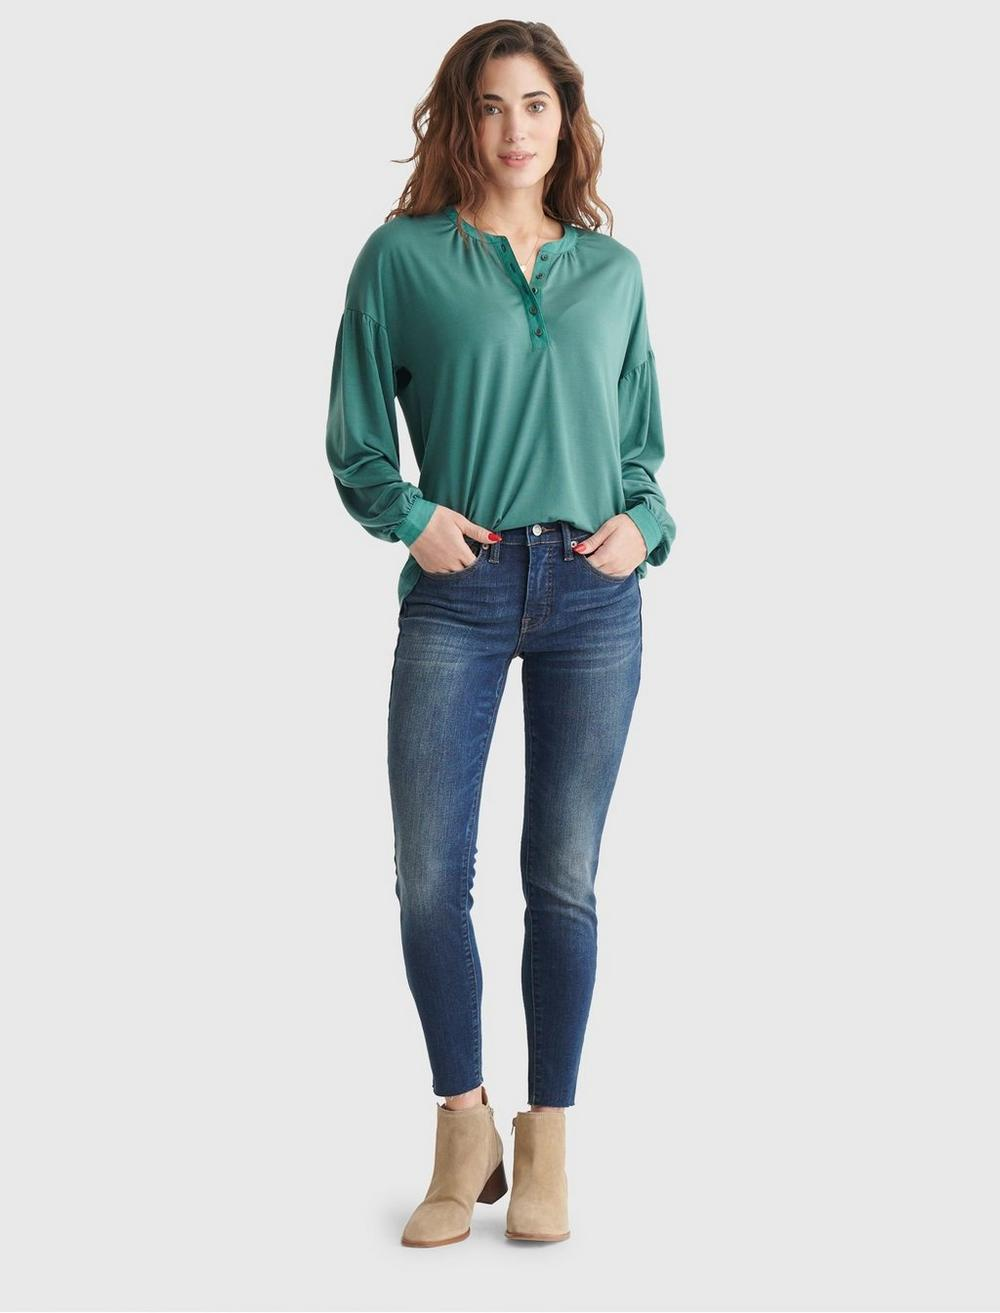 BUTTON-ACCENTED V-NECK TOP, image 2